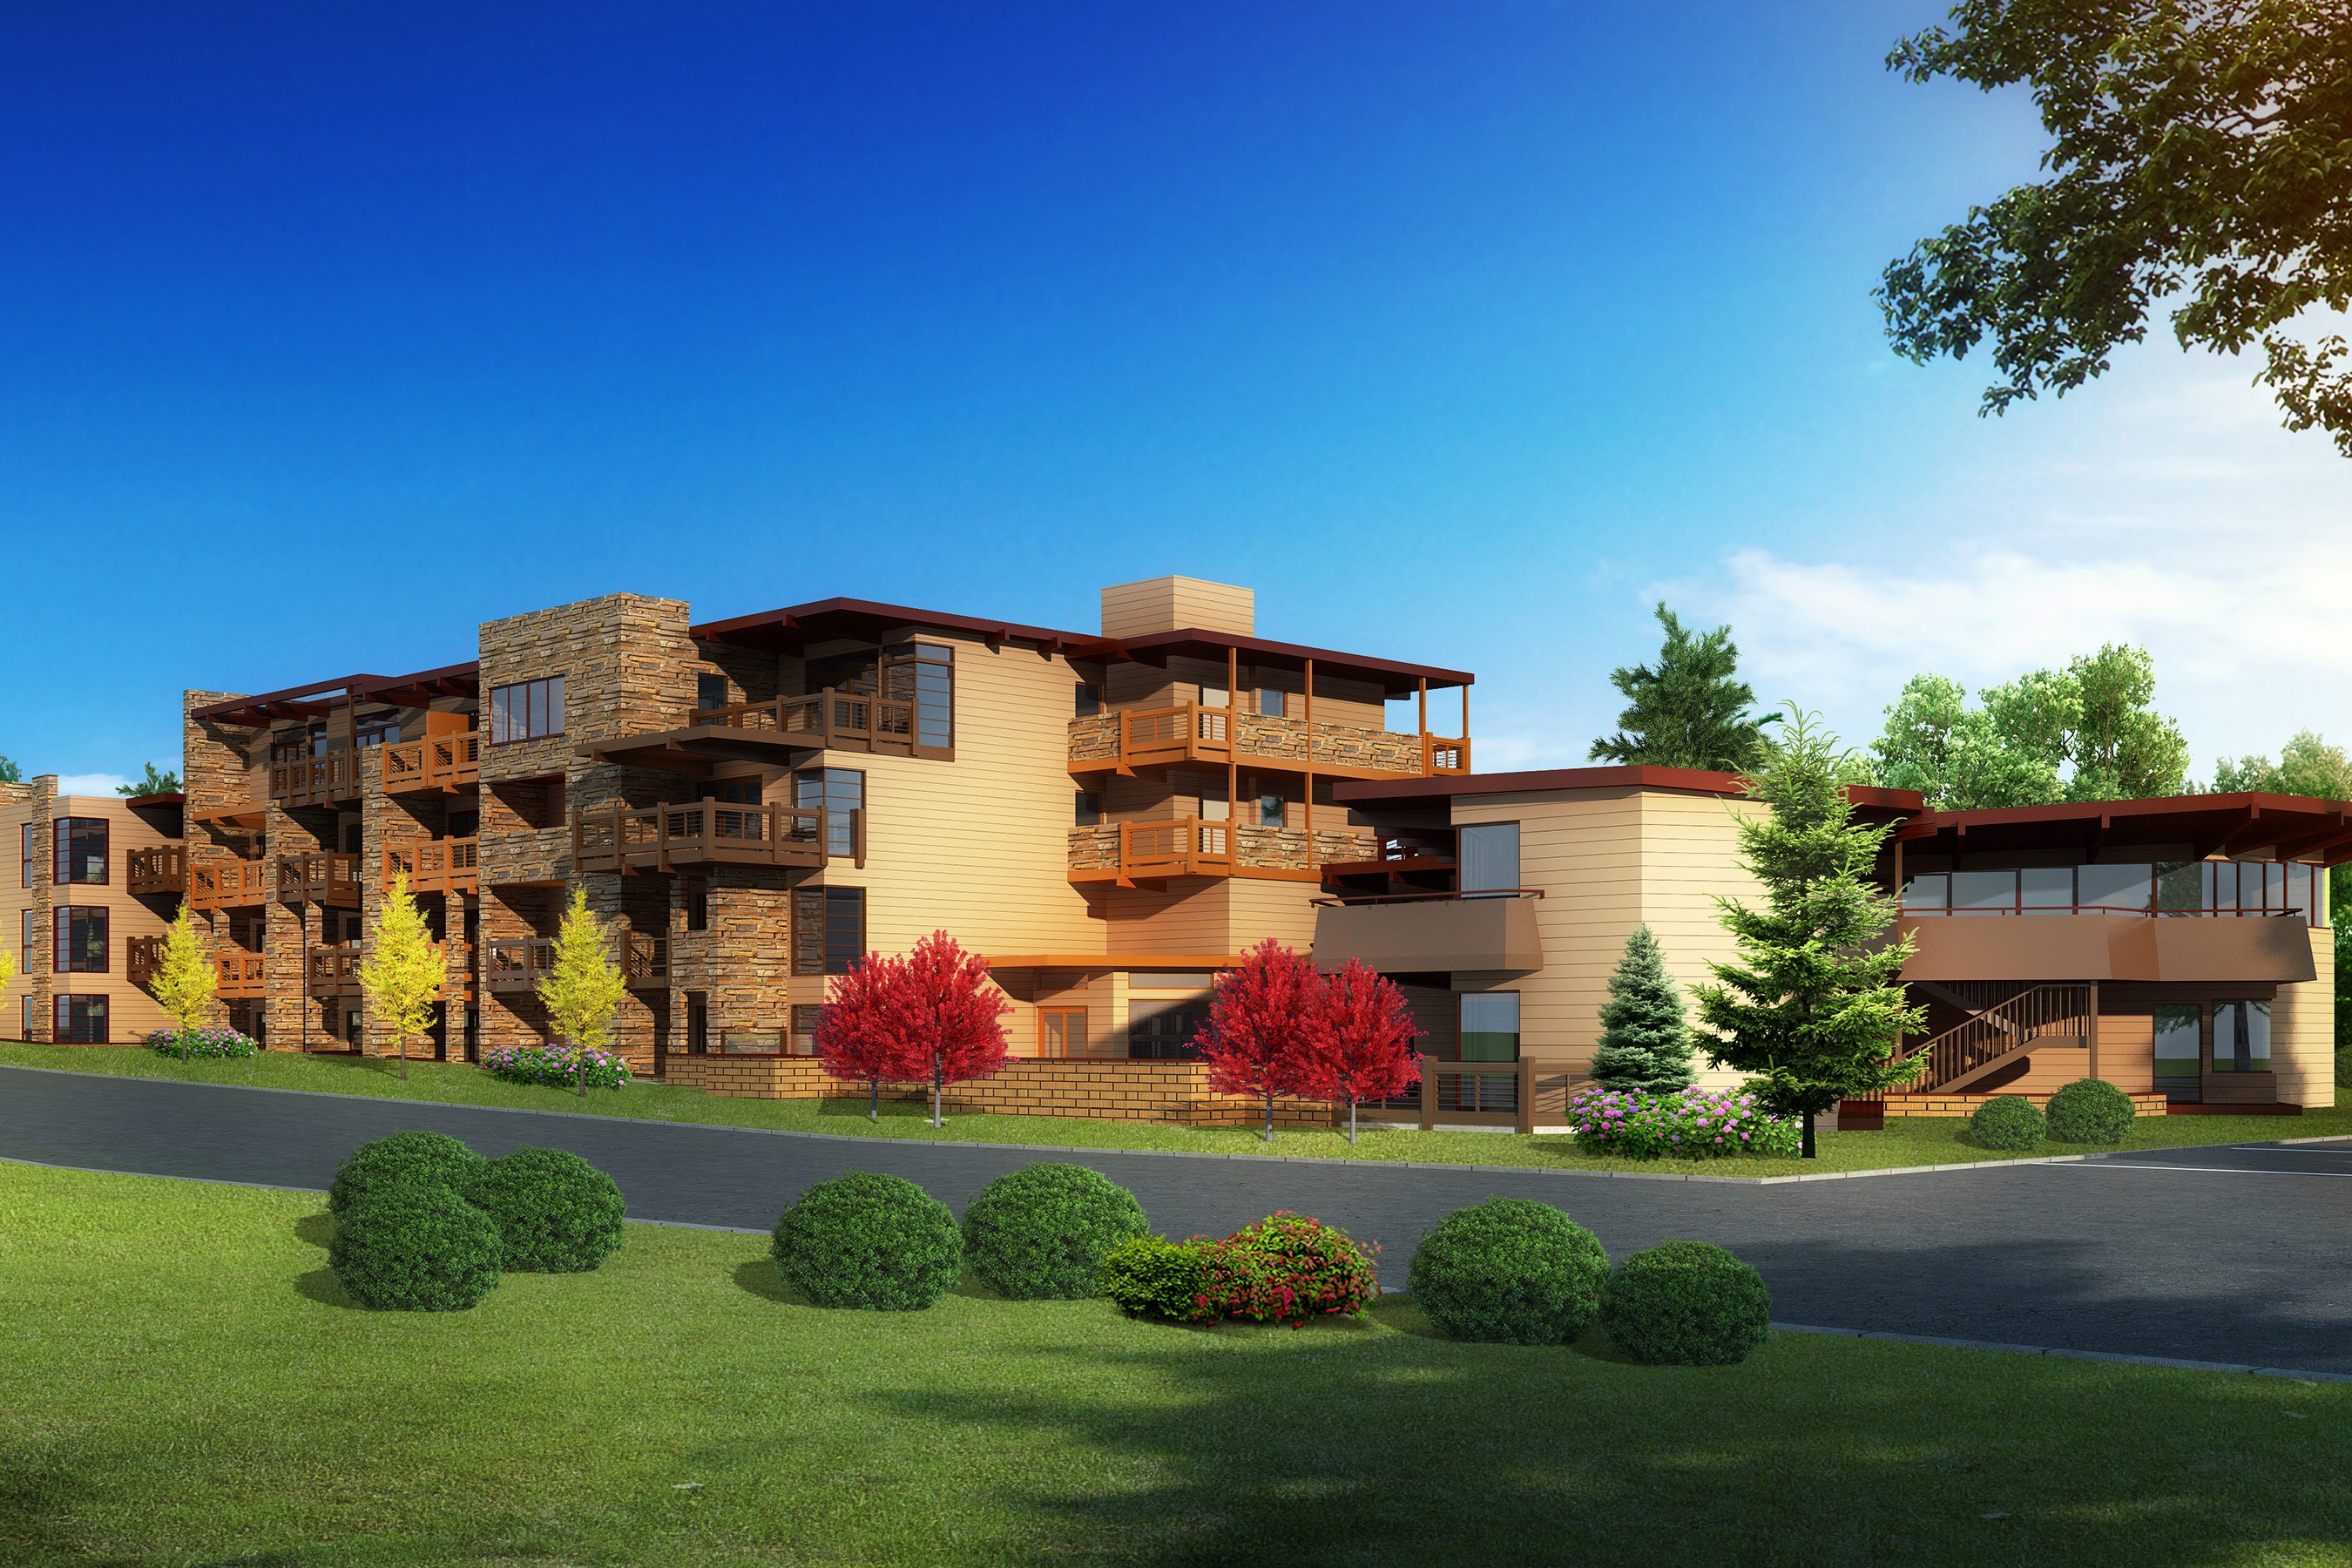 Condominium for Sale at Boomerang Lodge 500 W. Hopkins Avenue Unit 107 Aspen, Colorado, 81611 United States